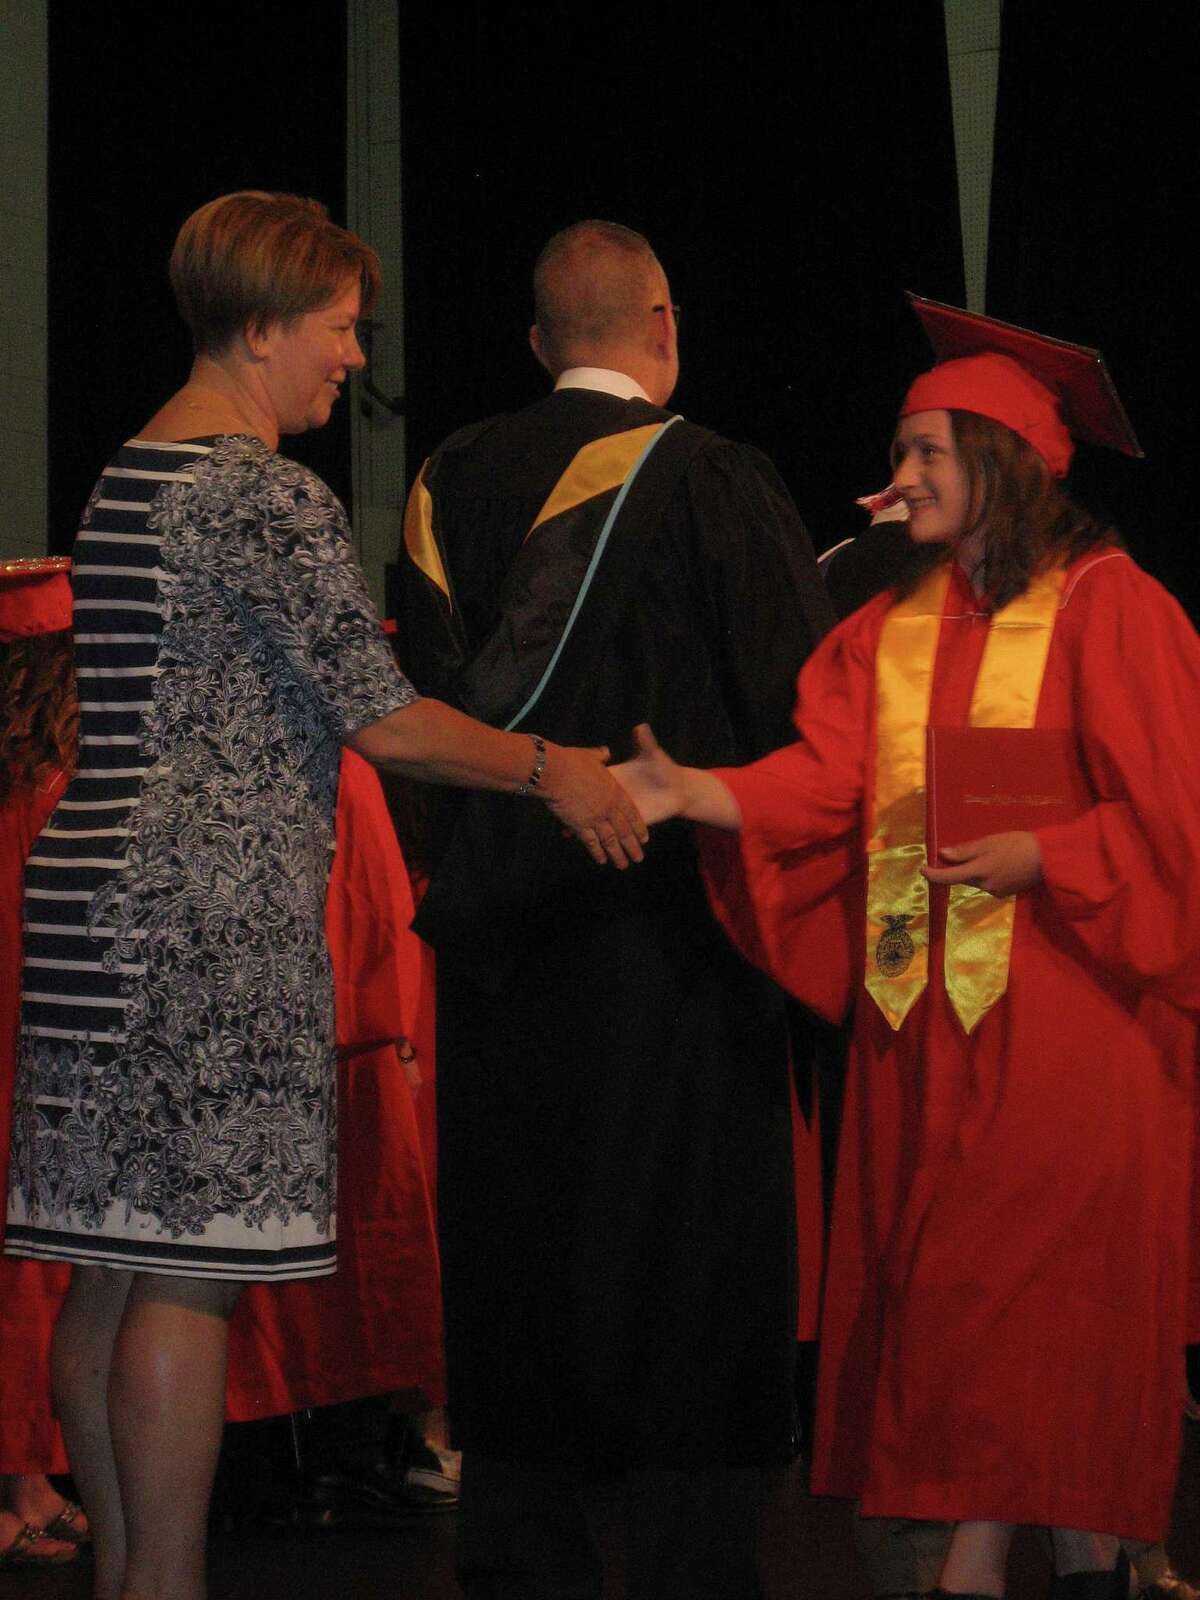 Wamogo Regional High School's Class of 2019 graduated Friday night in the auditorium, where a packed house of family and friends clapped and cheered.